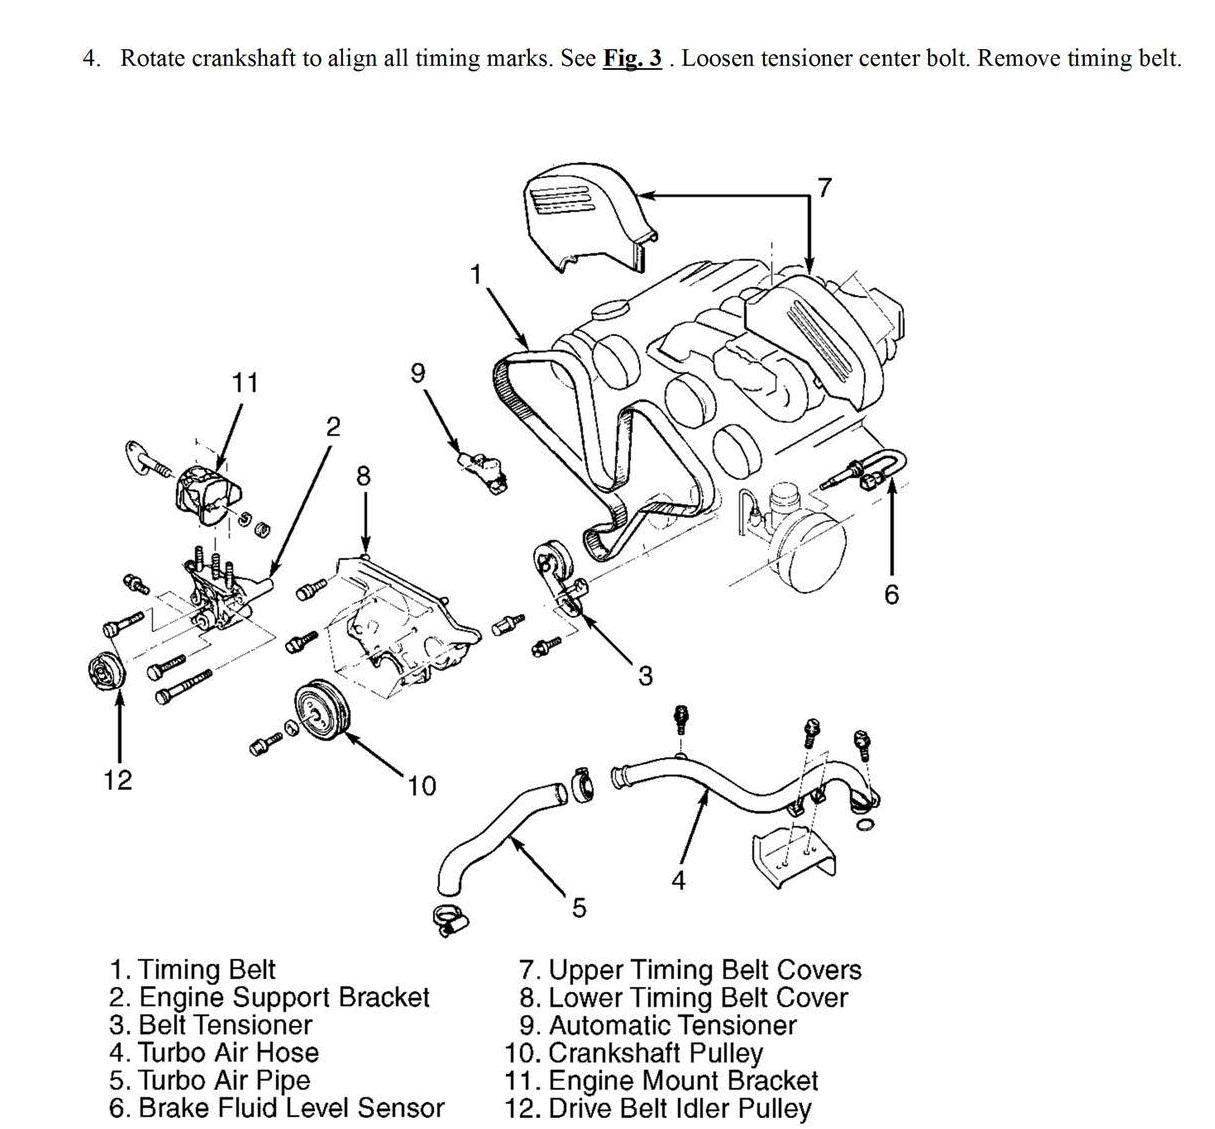 1992 300zx engine wiring diagram